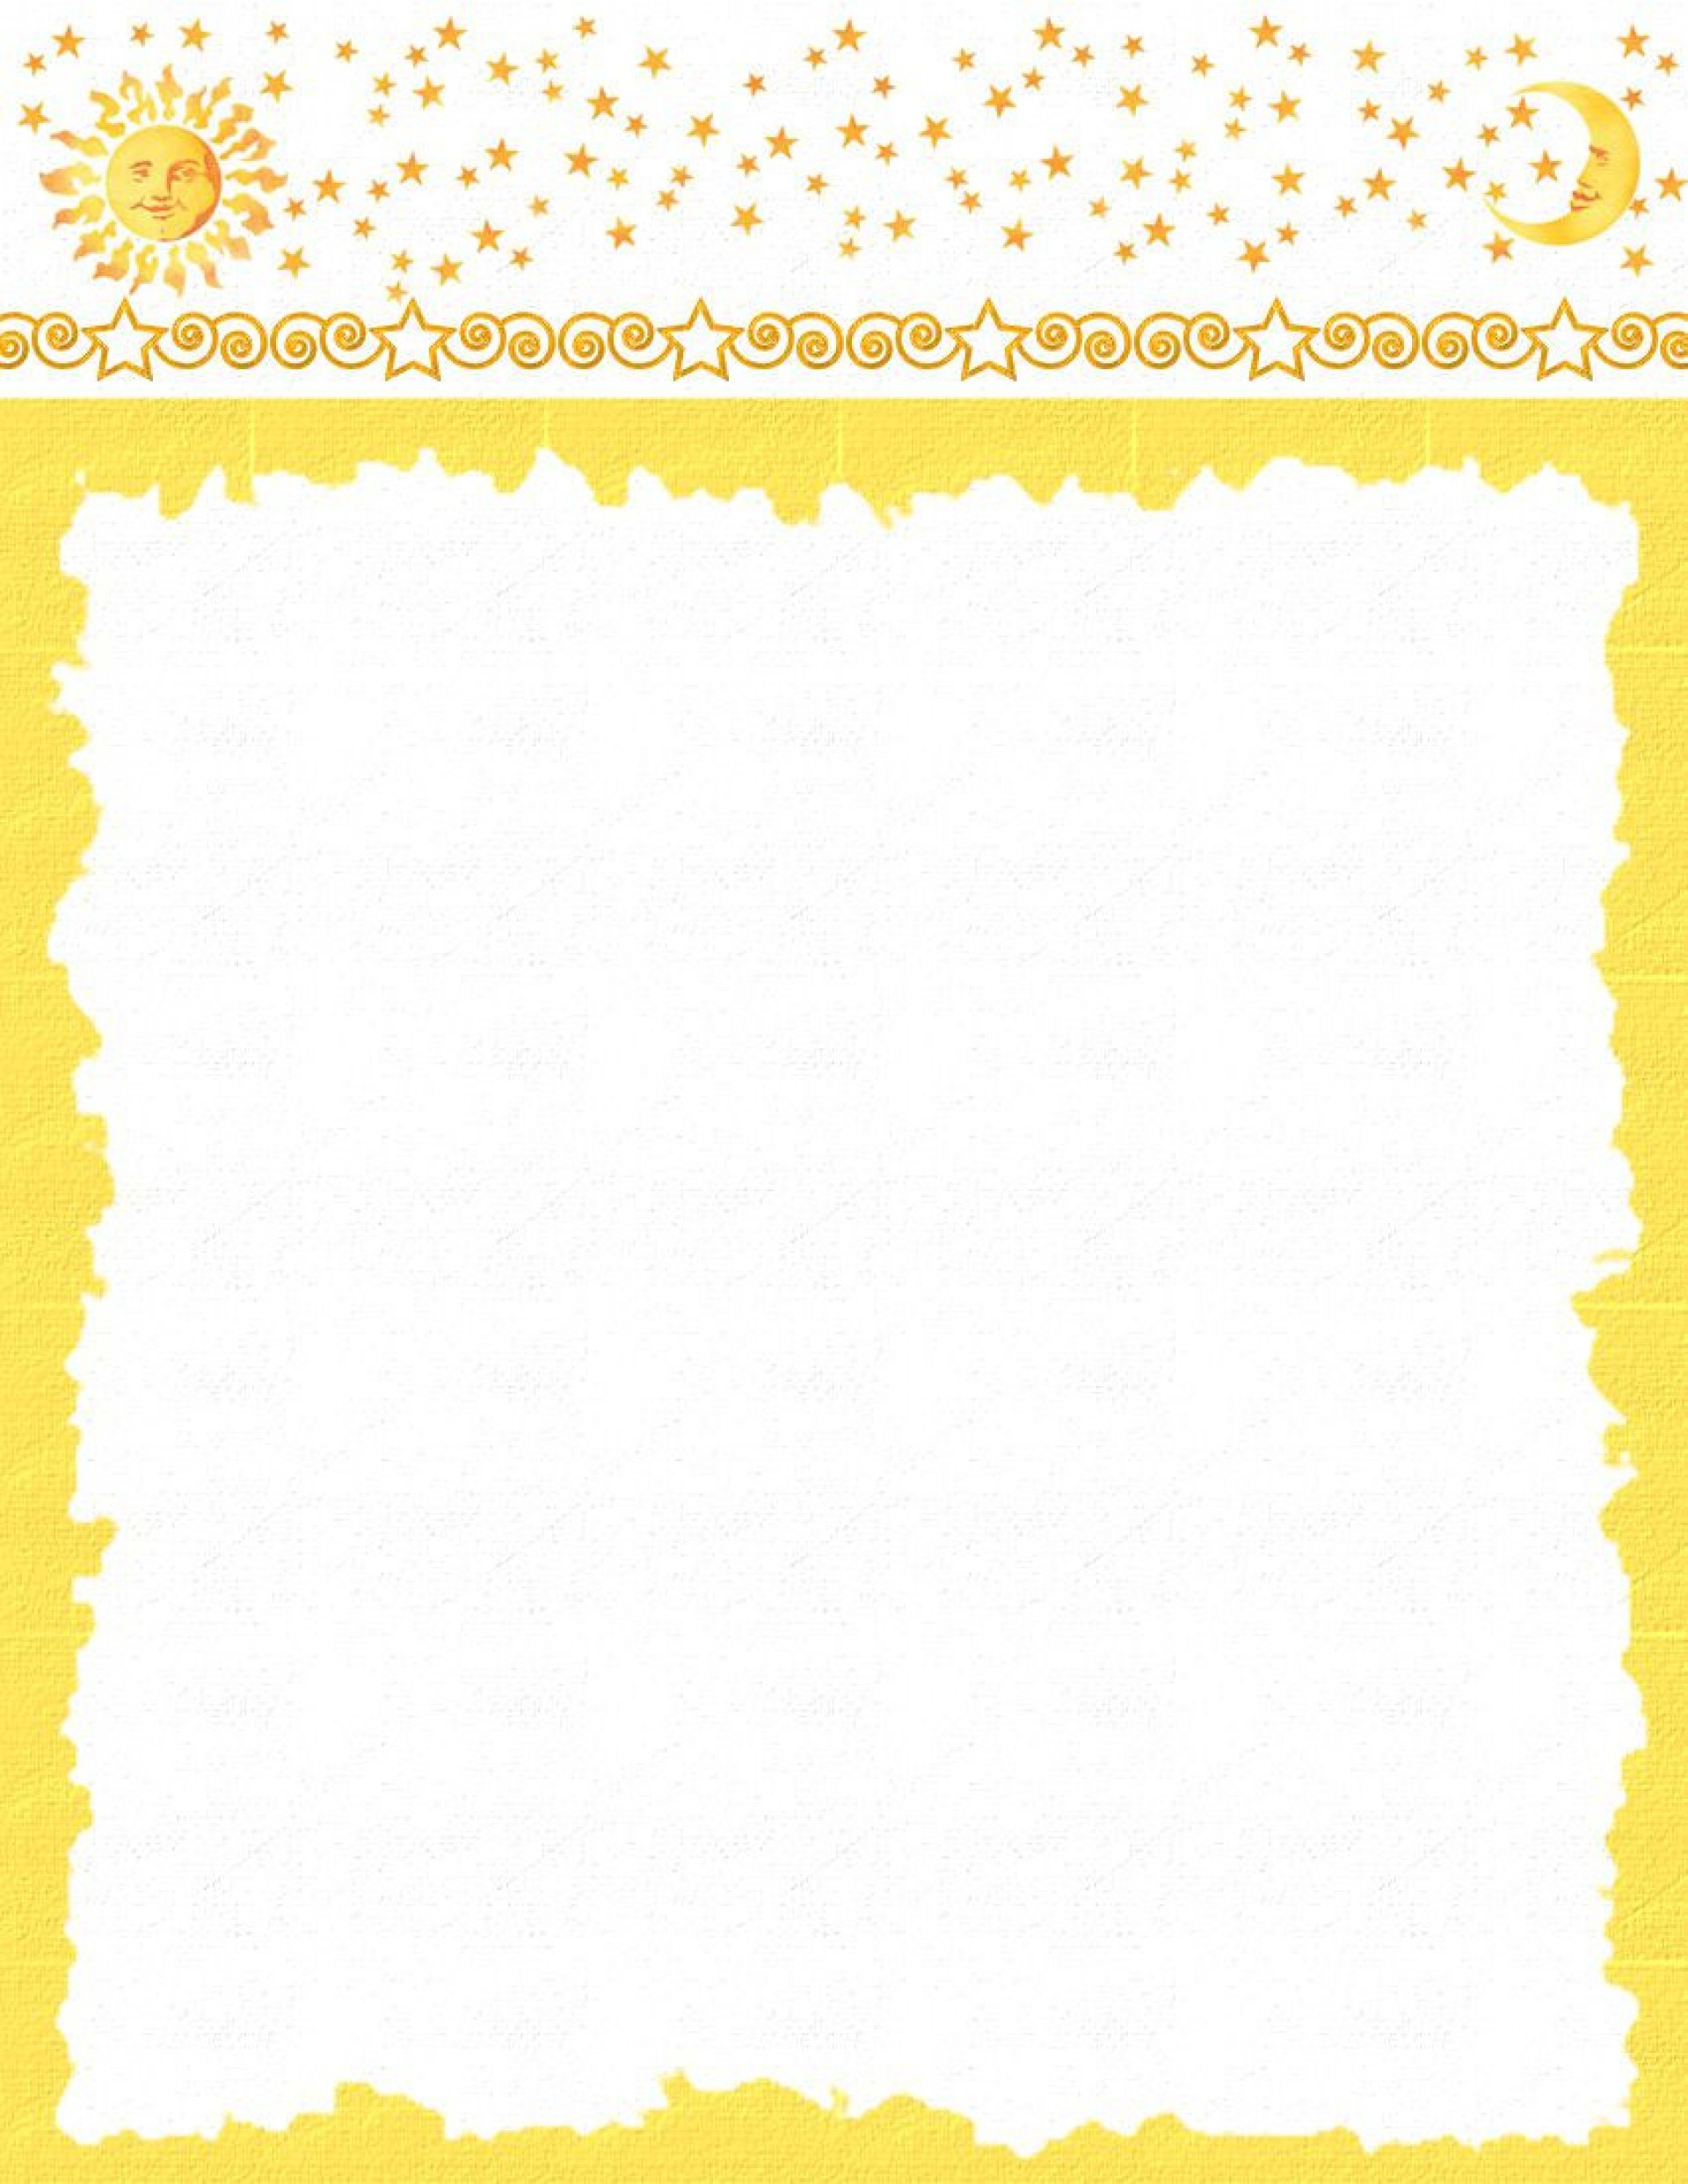 009 Fantastic Stationary Template For Word Highest Clarity  Lined Stationery Free Download1920